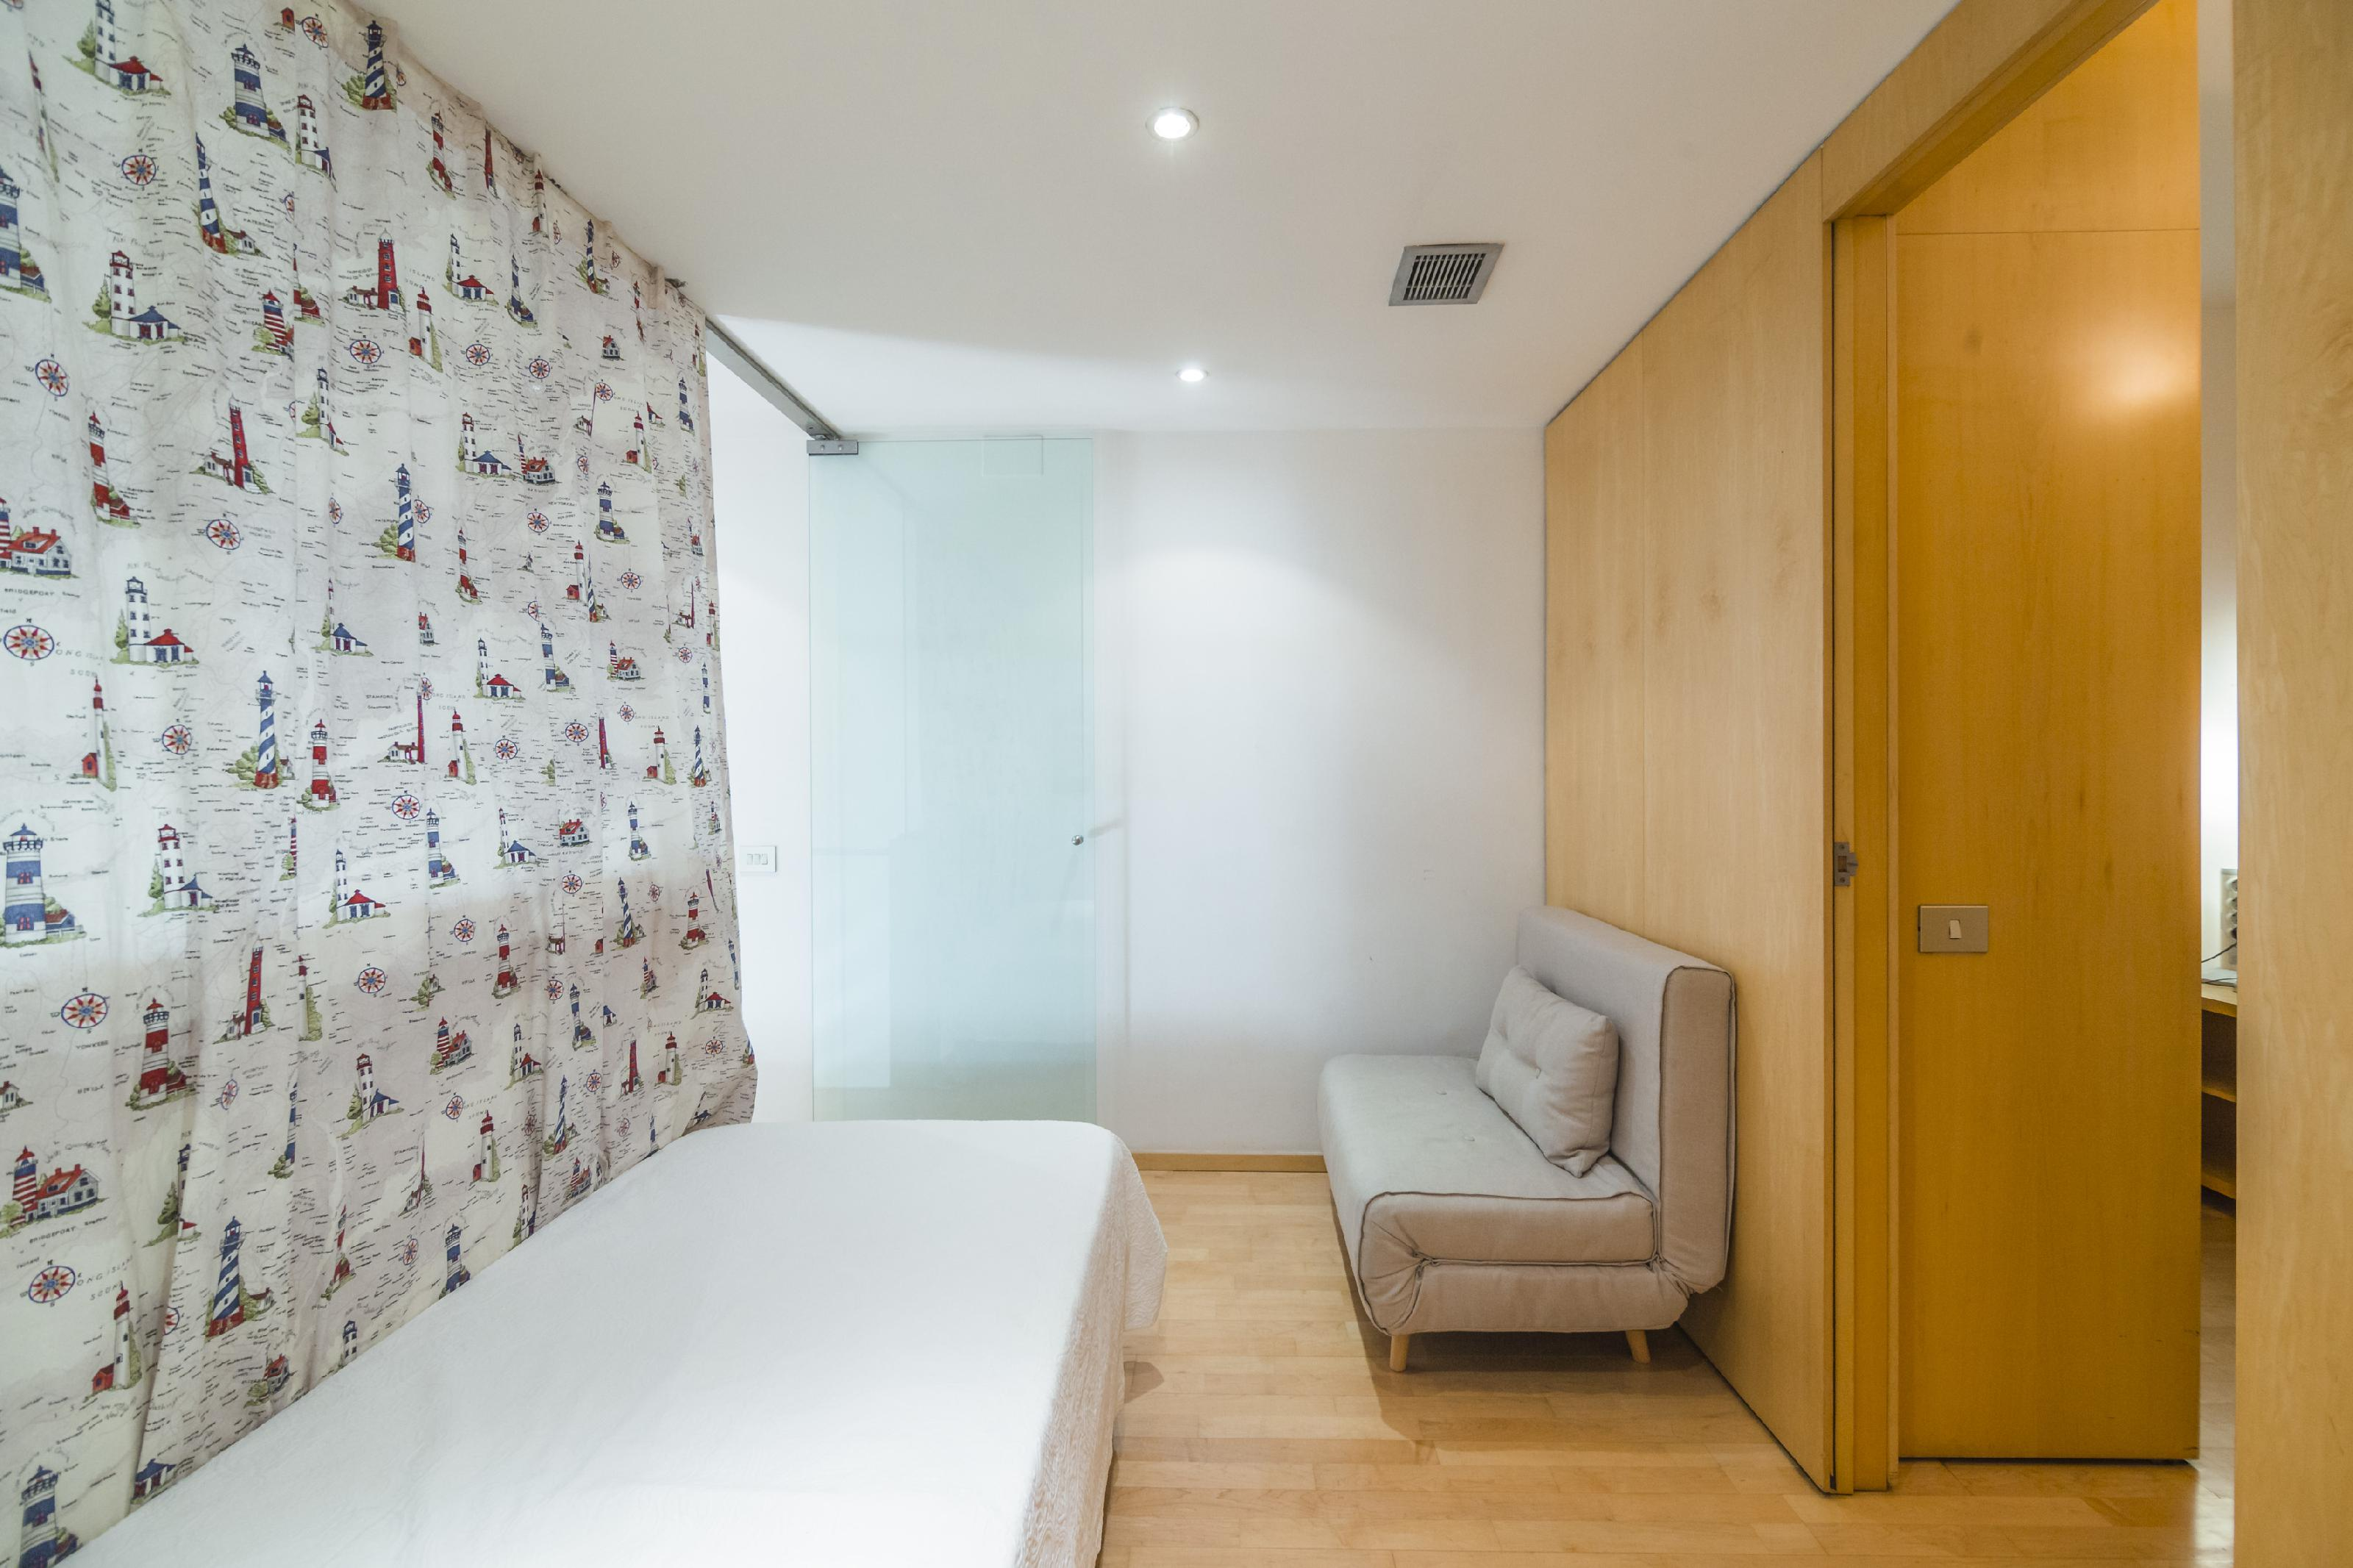 109651 Apartment for sale in Eixample, Dreta Eixample 28